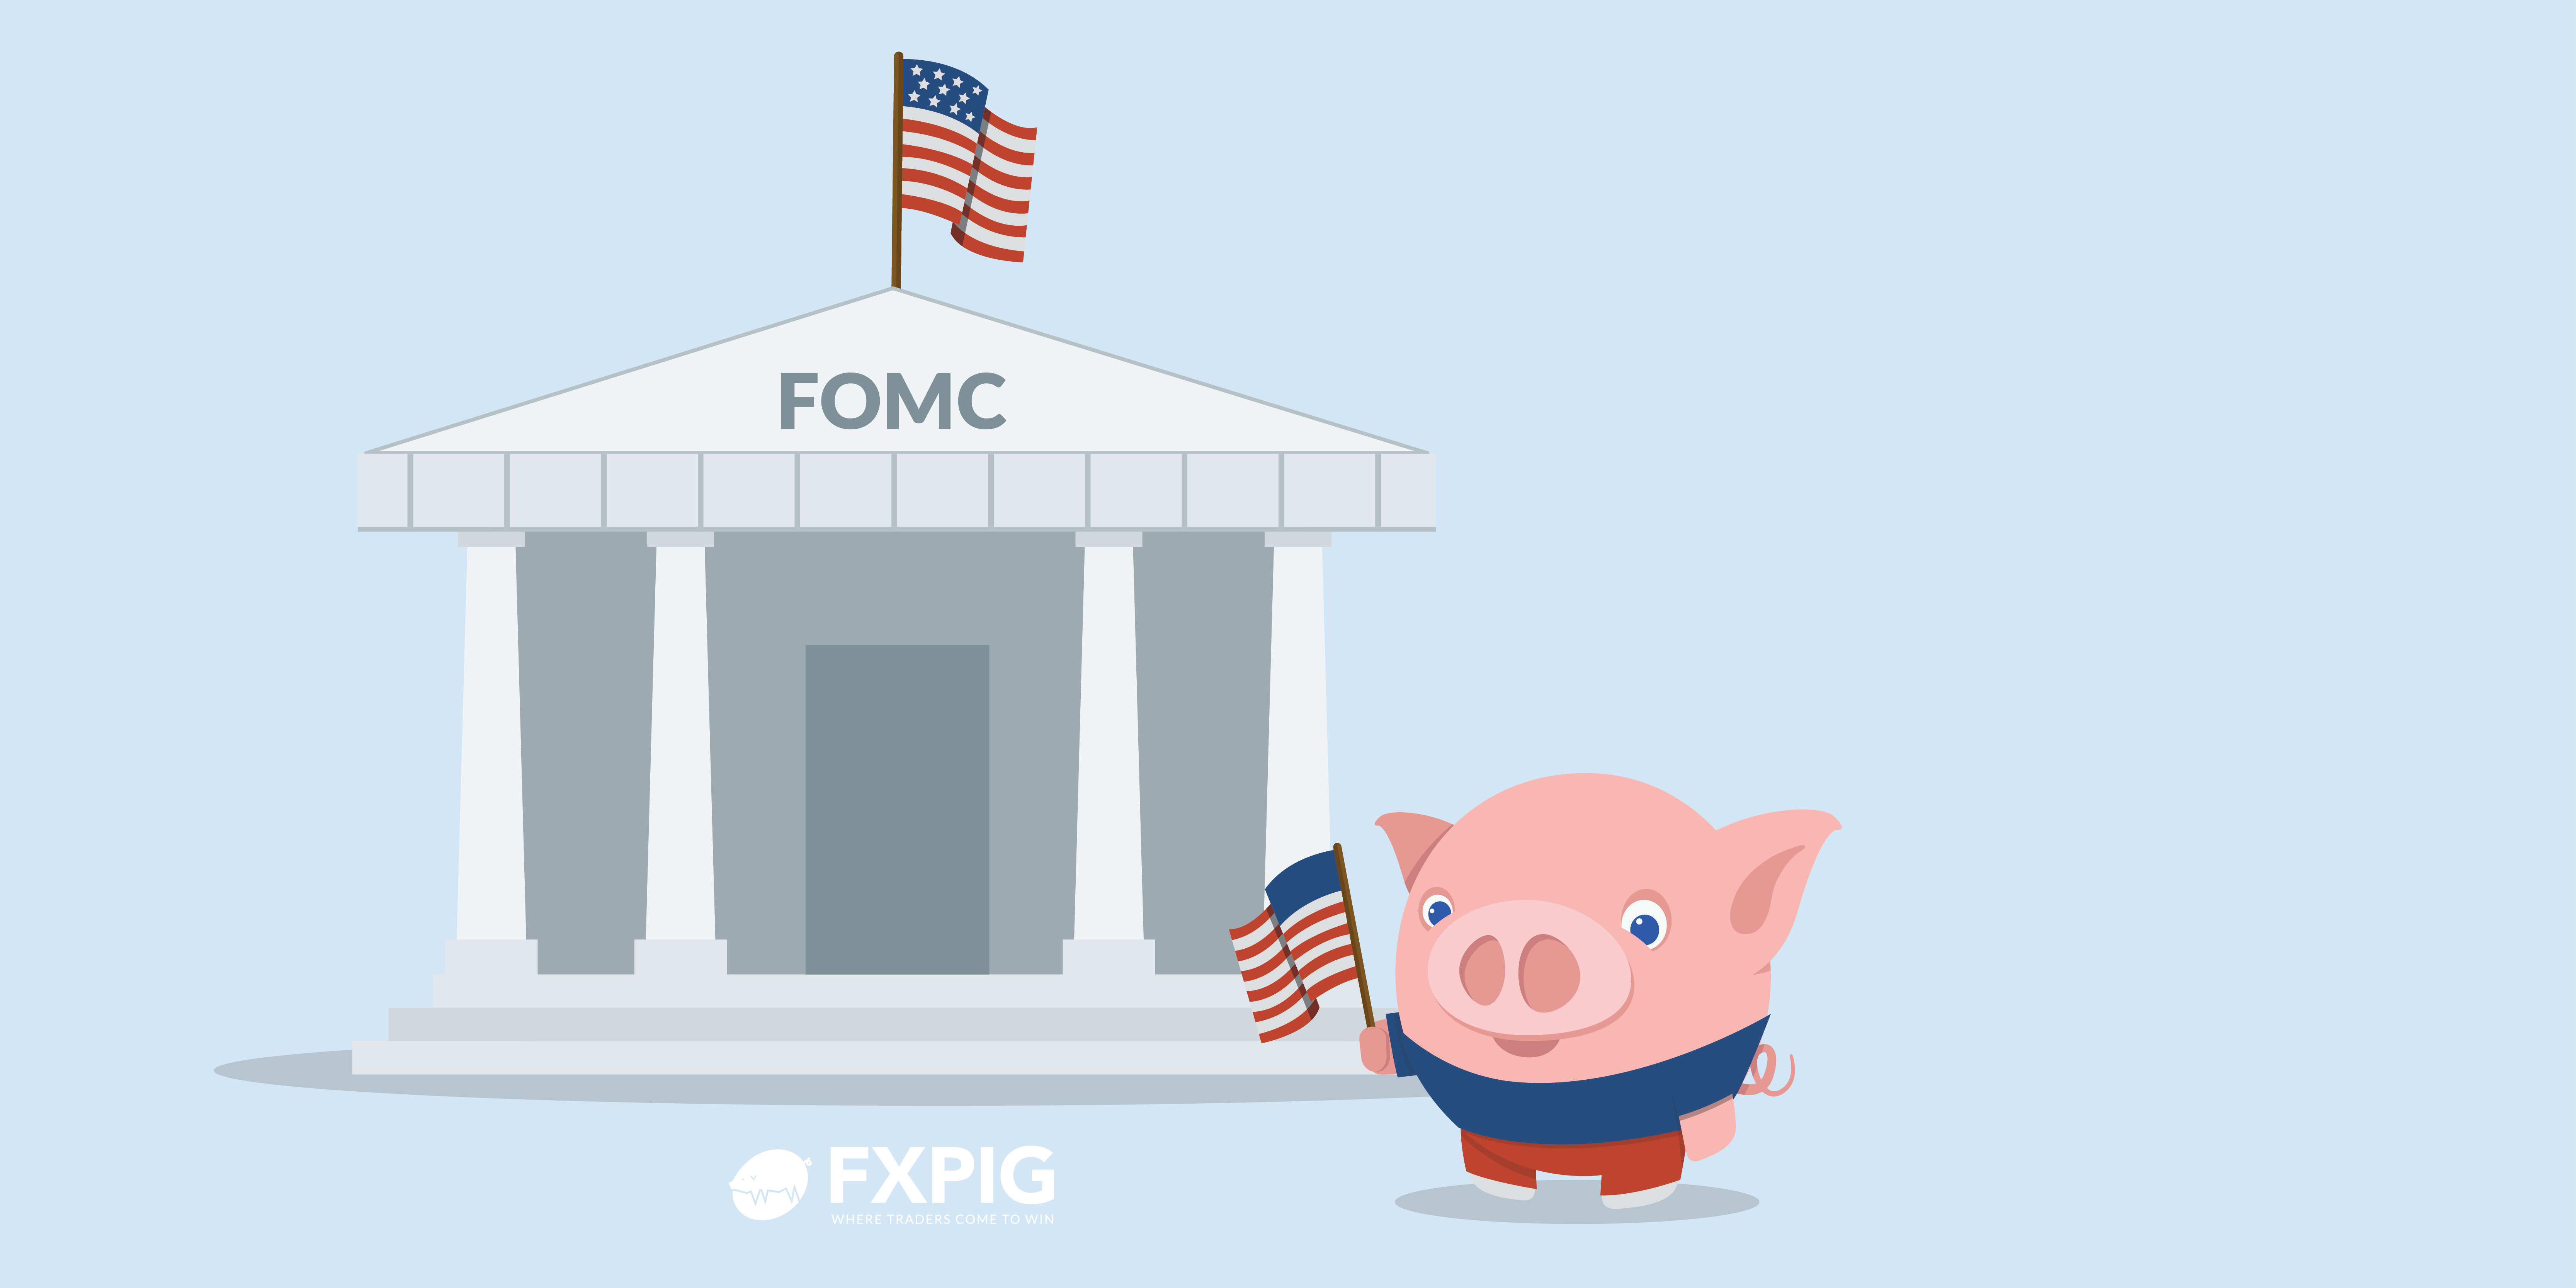 FOREX_FOMC-Minutes-of-EUR-USD_FXPIG